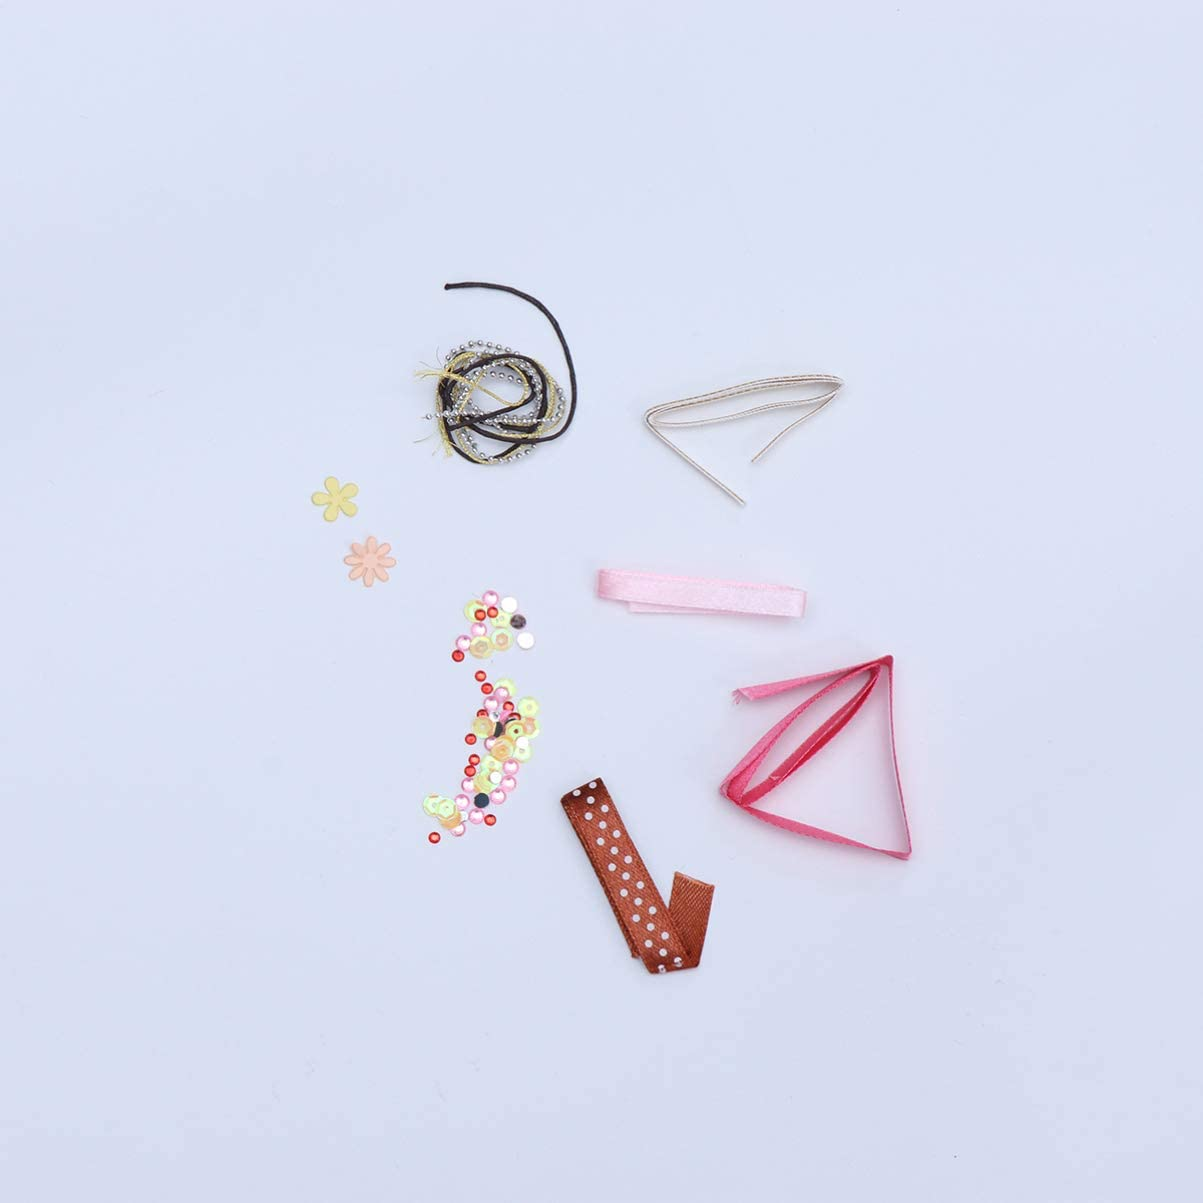 605898 SCB04 SUPVOX DIY Greeting Card Making Kit DIY Handmade Cards Maker Kit for Kids Adults Create Your Personalized Birthday Thank You Cards